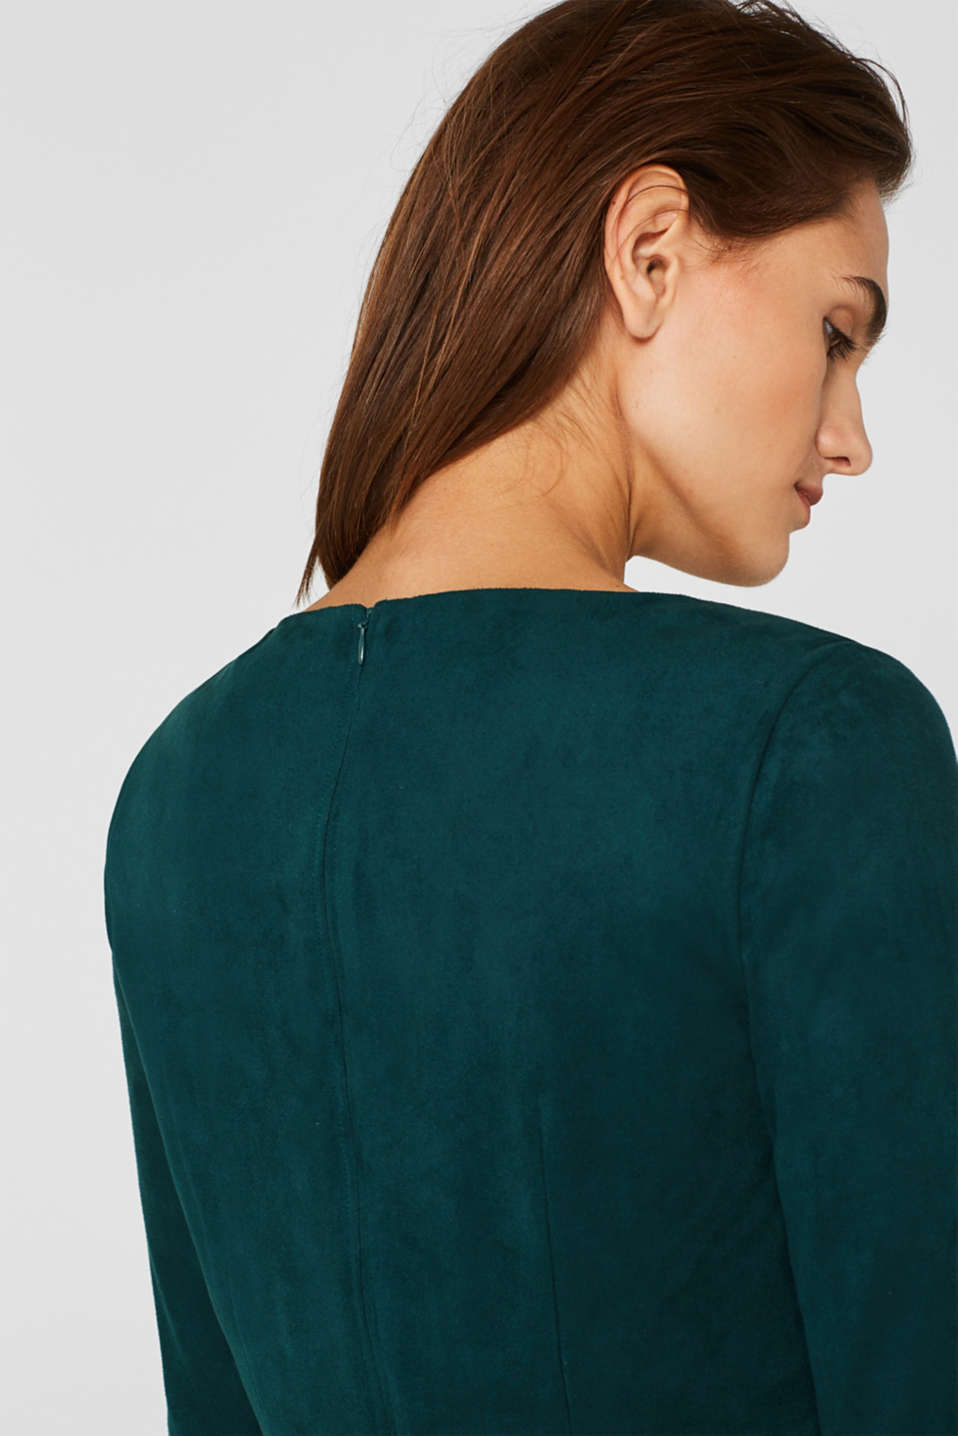 Stretch faux leather dress, DARK TEAL GREEN, detail image number 2